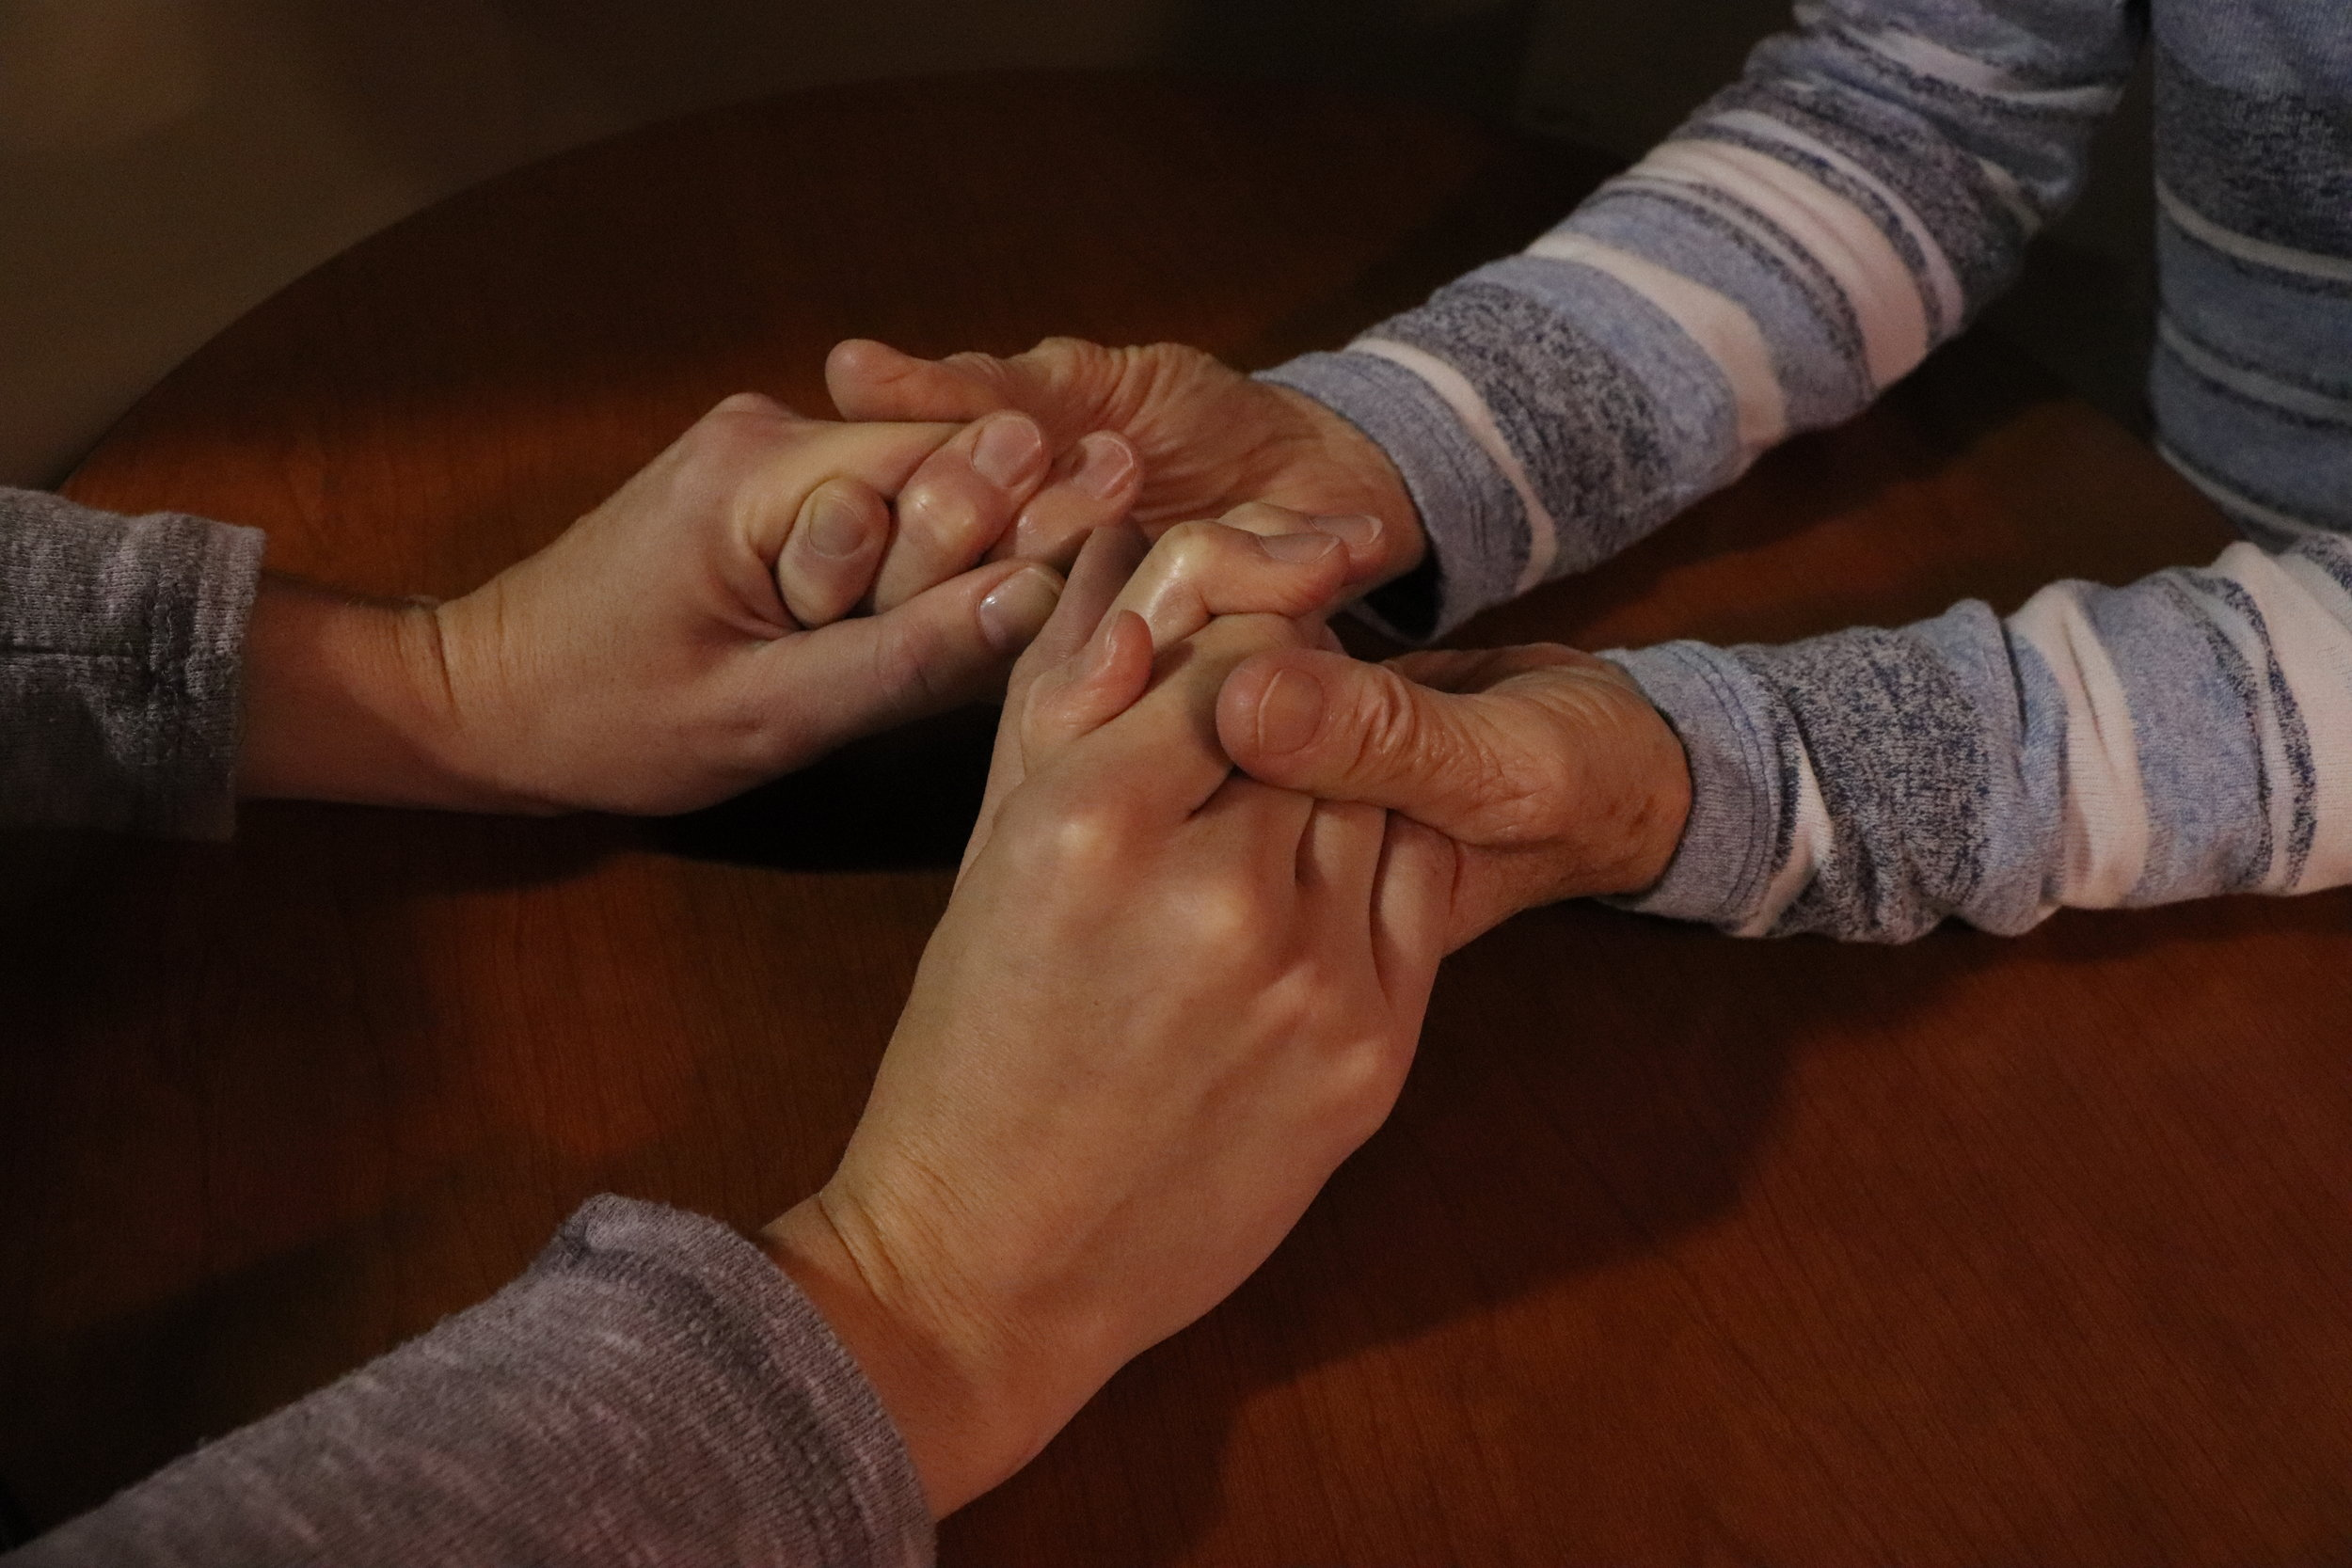 Care - Praying for the needs of our church family; visiting those unable to be with us either short or long term